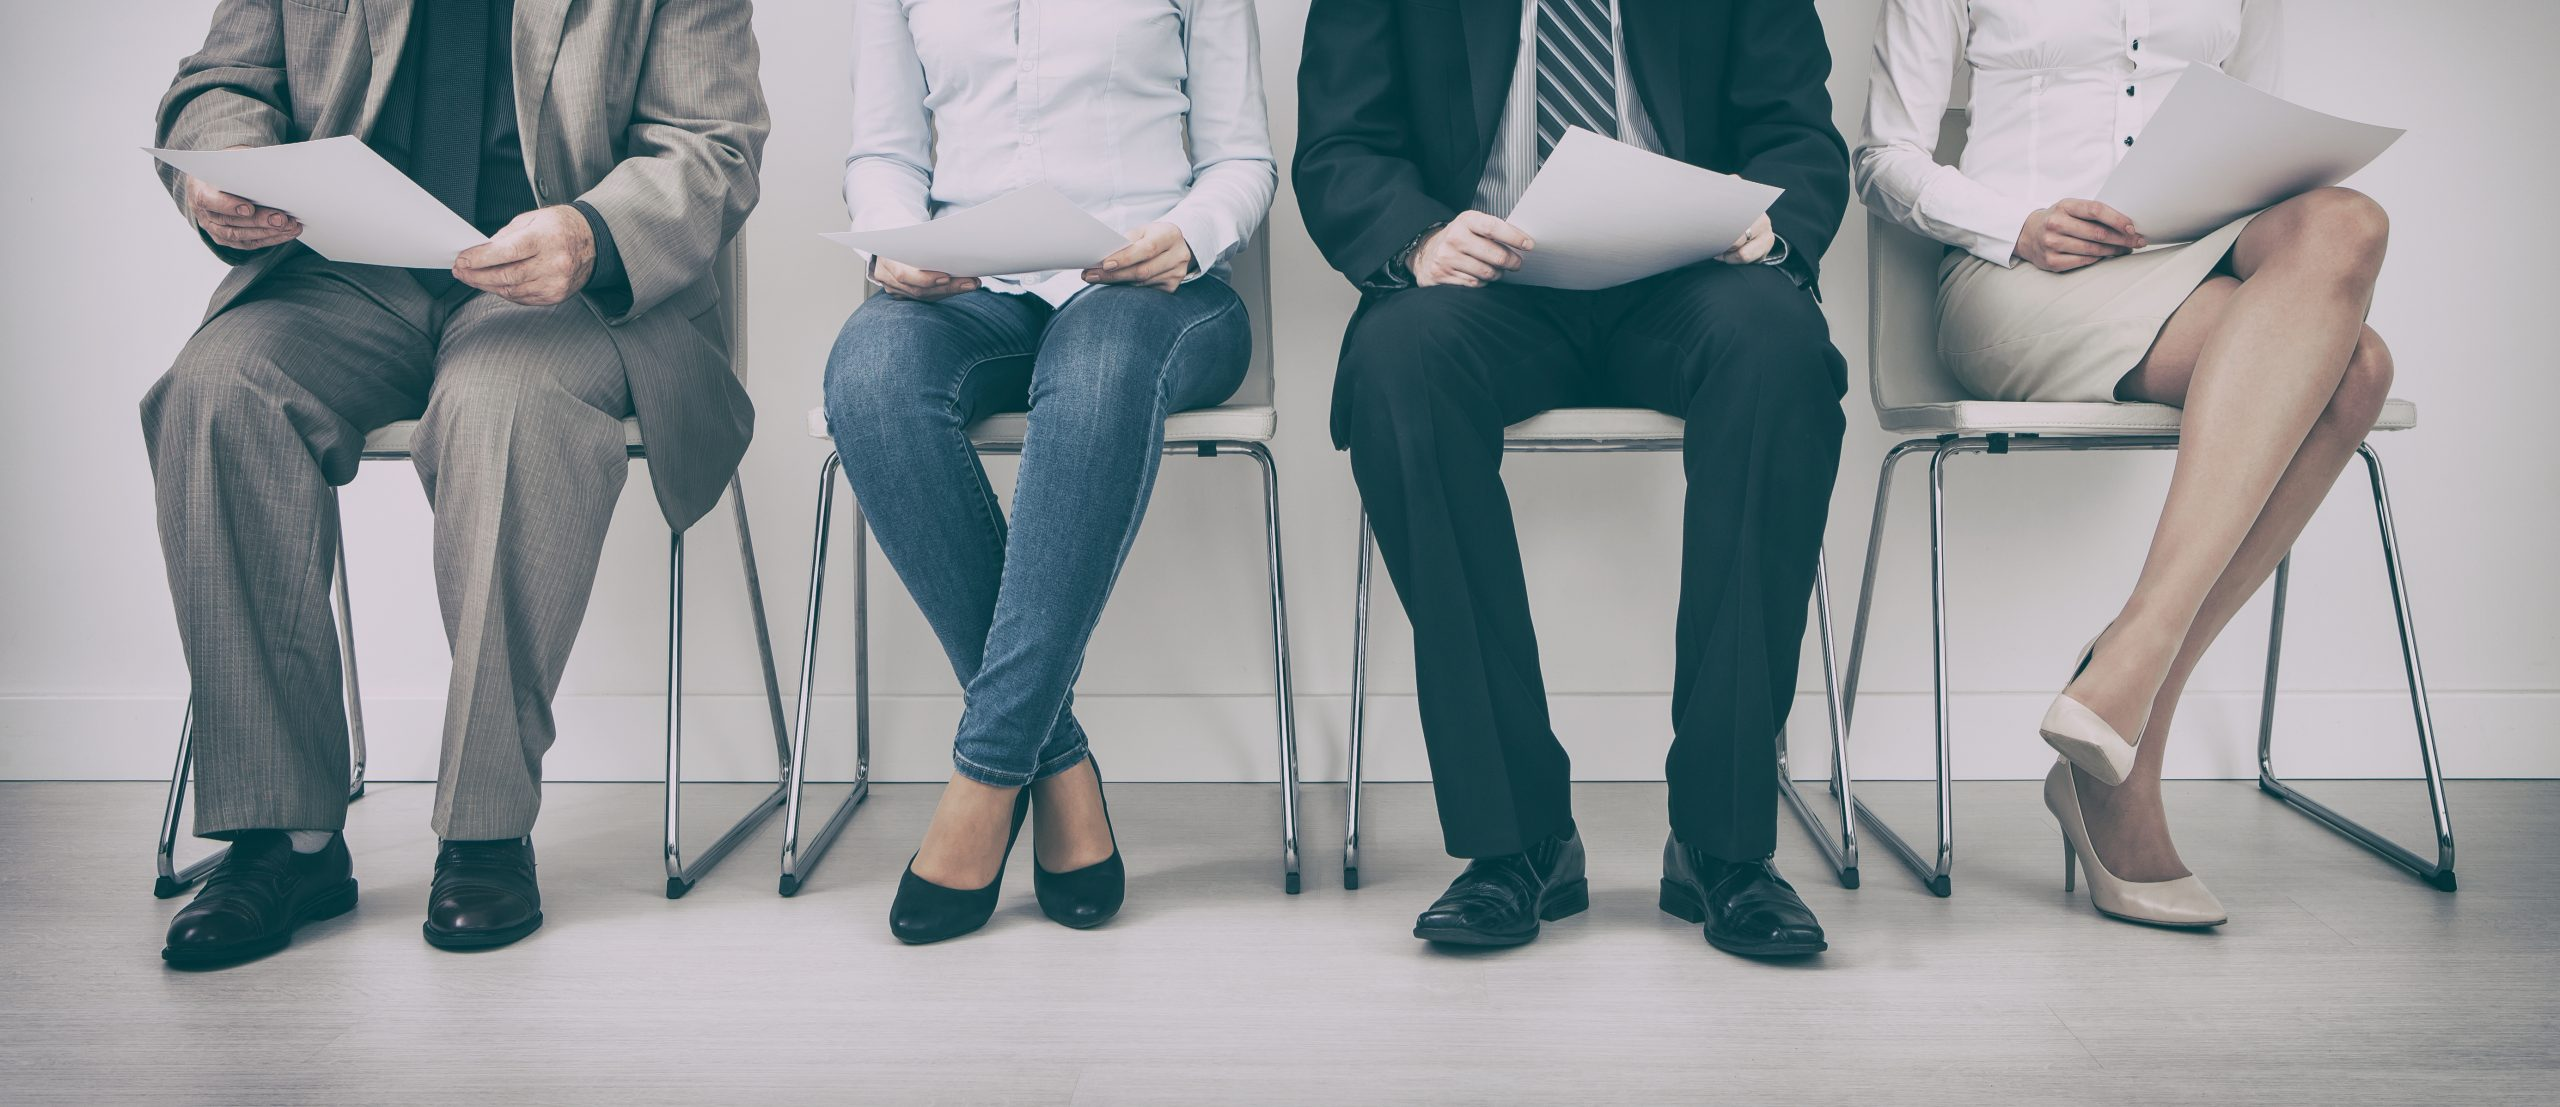 Flip the Hiring Model on Its Head With 1 Simple Move